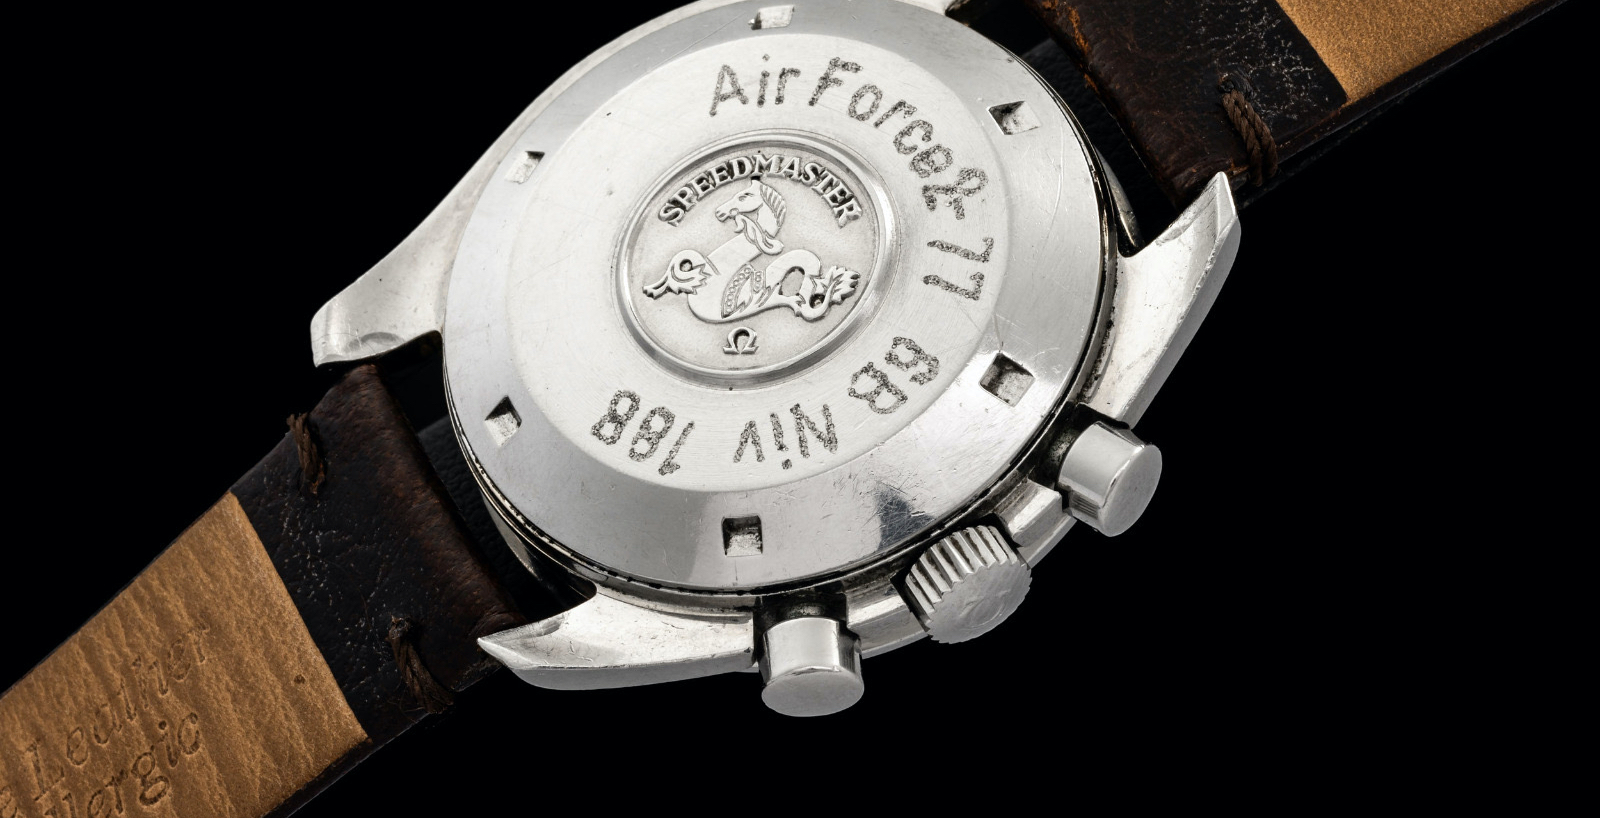 THE RHODESIAN AIR FORCE <BR> OMEGA WATCHES